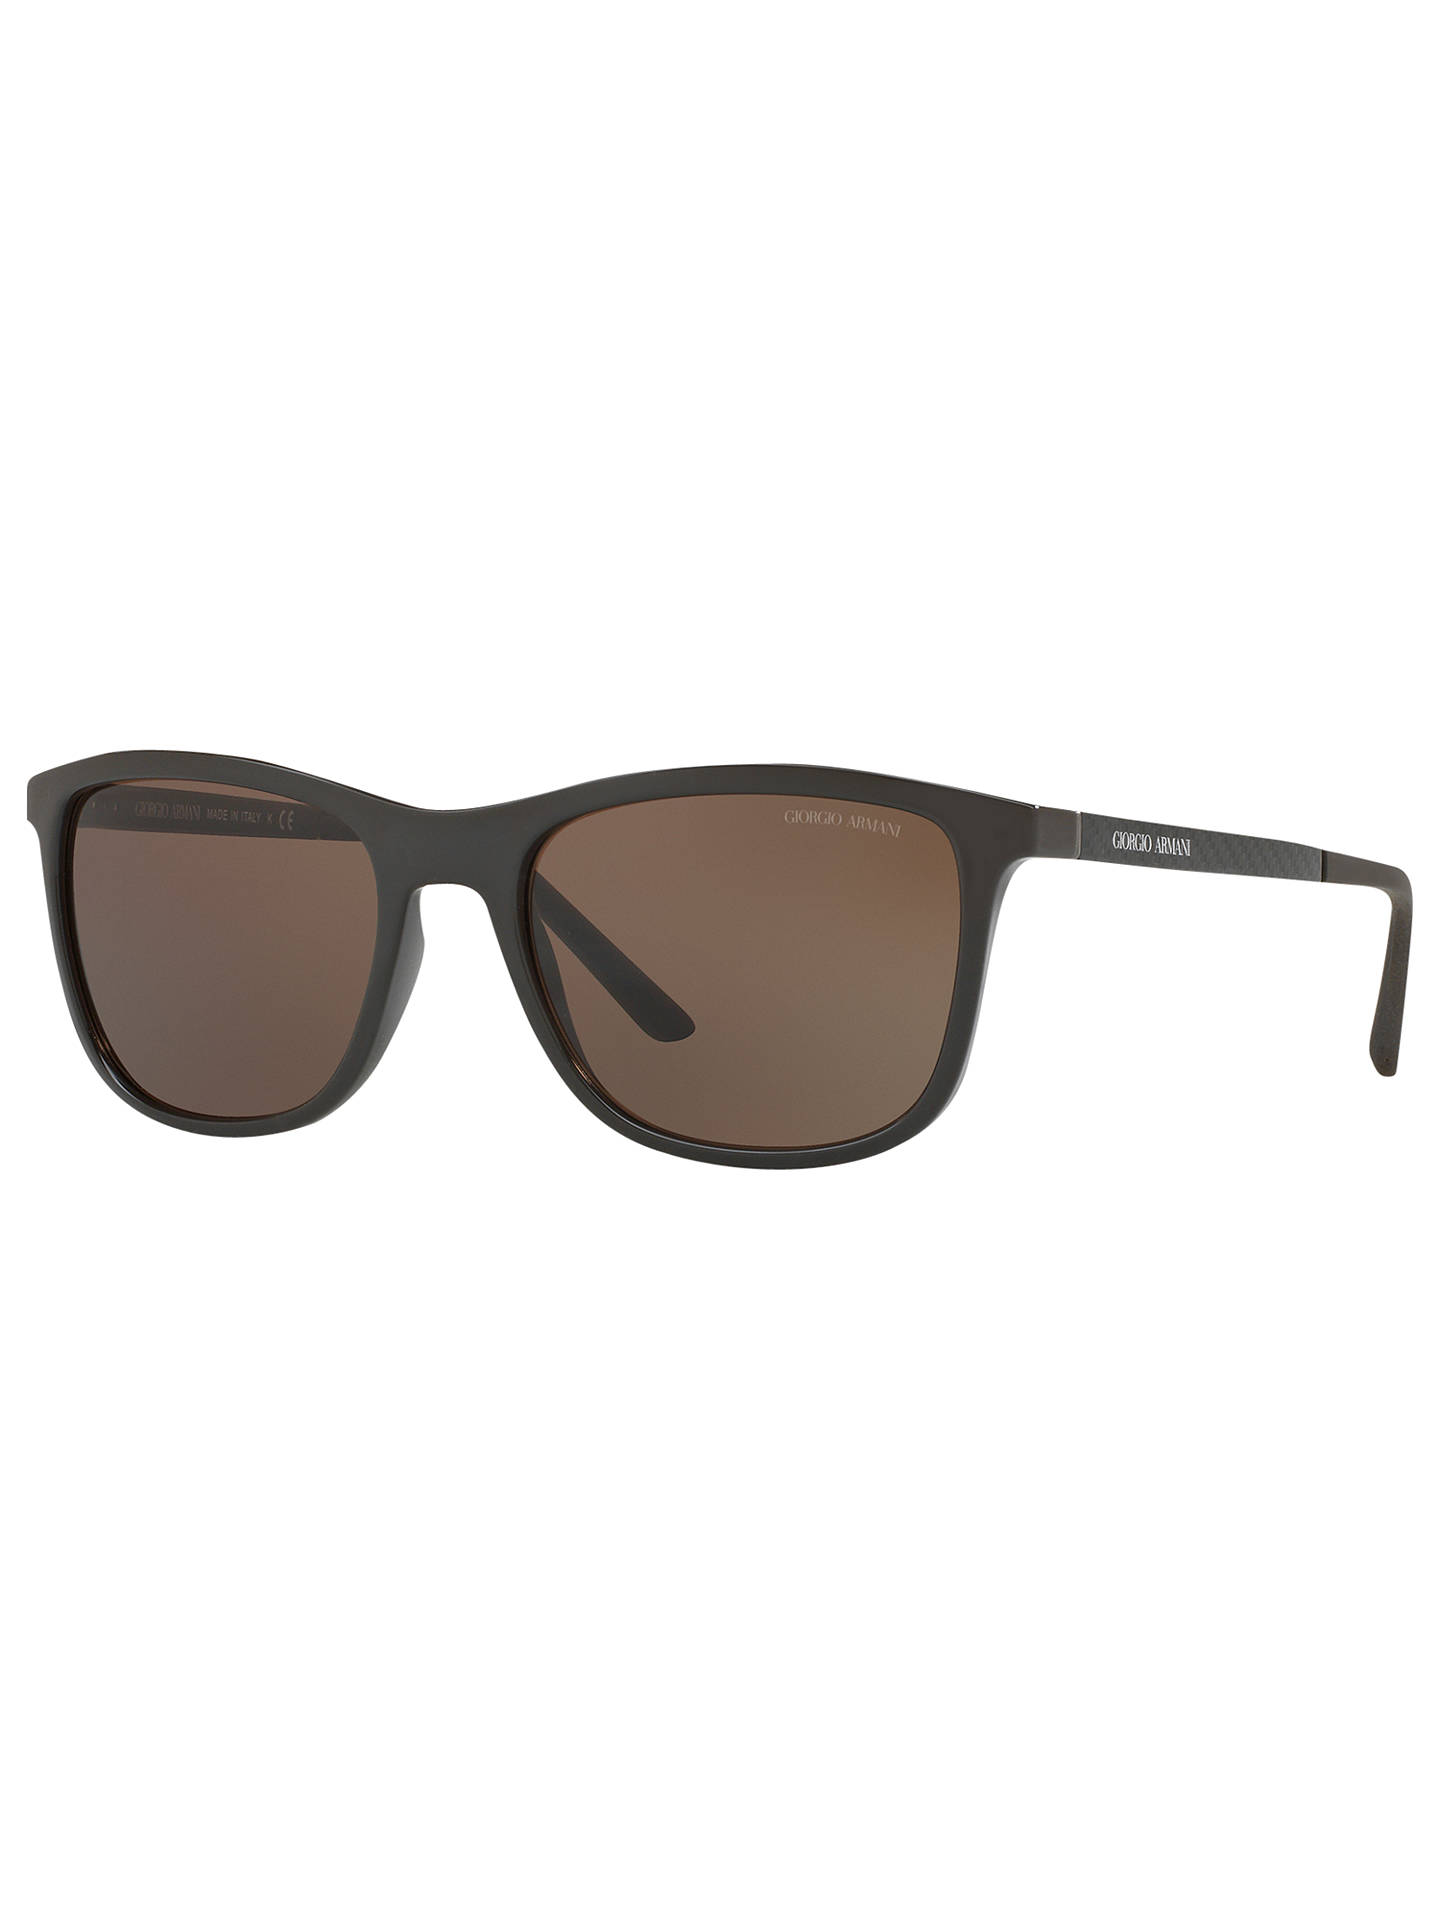 107e9d00dd1b Buy Giorgio Armani AR8087 Square Sunglasses, Matte Grey/Brown Online at  johnlewis.com ...